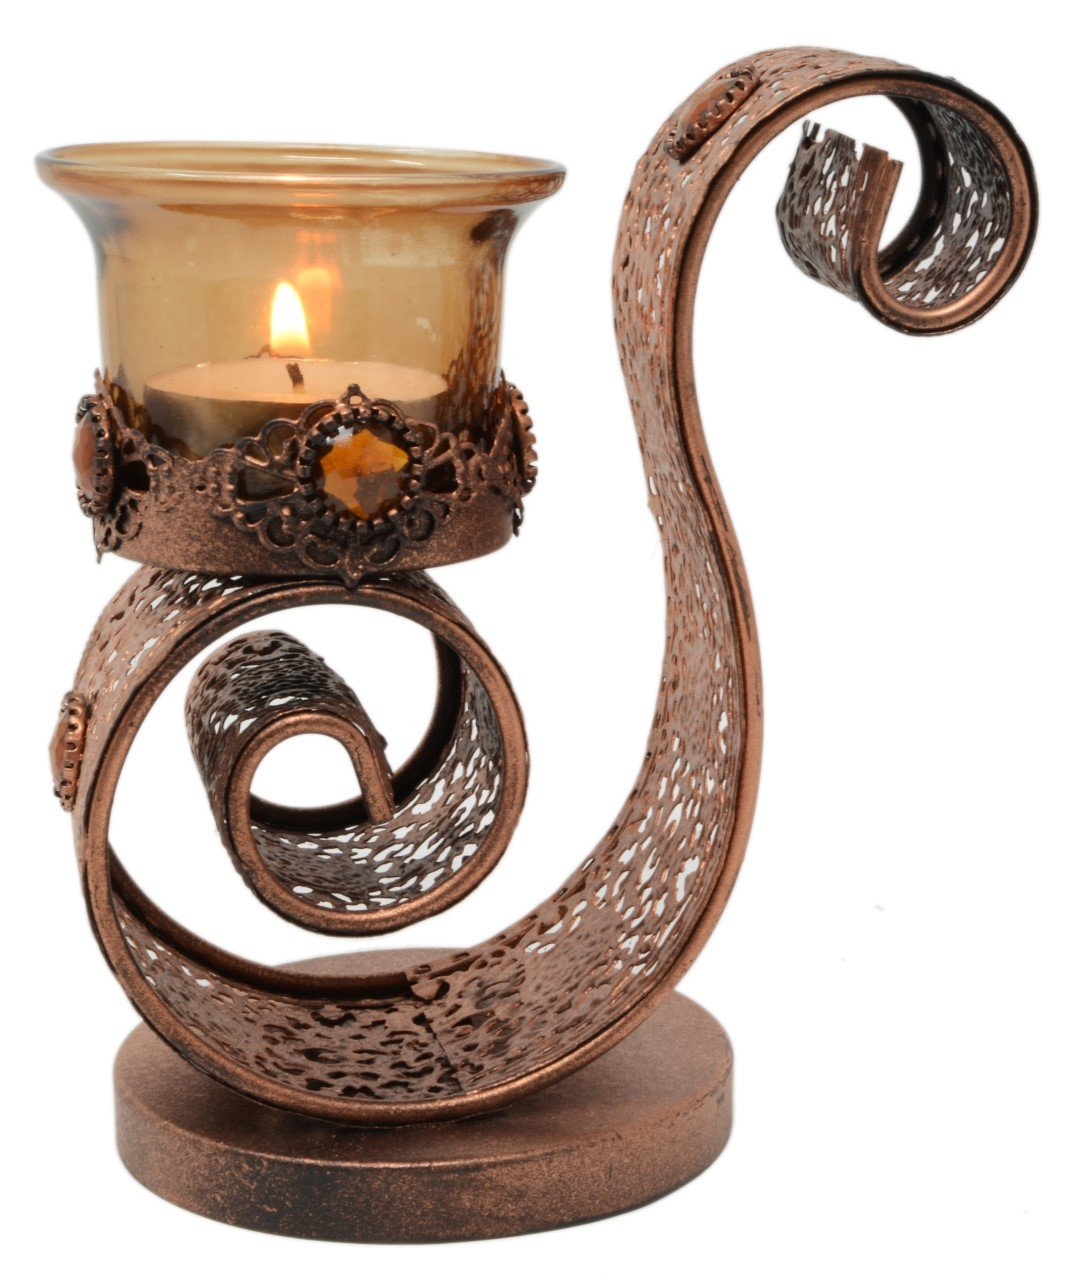 9d2fb6ef0b Piquaboo Swirl Copper Bejewelled Moroccan Tealight Holder 14 cm Height:  Amazon.co.uk: Kitchen & Home